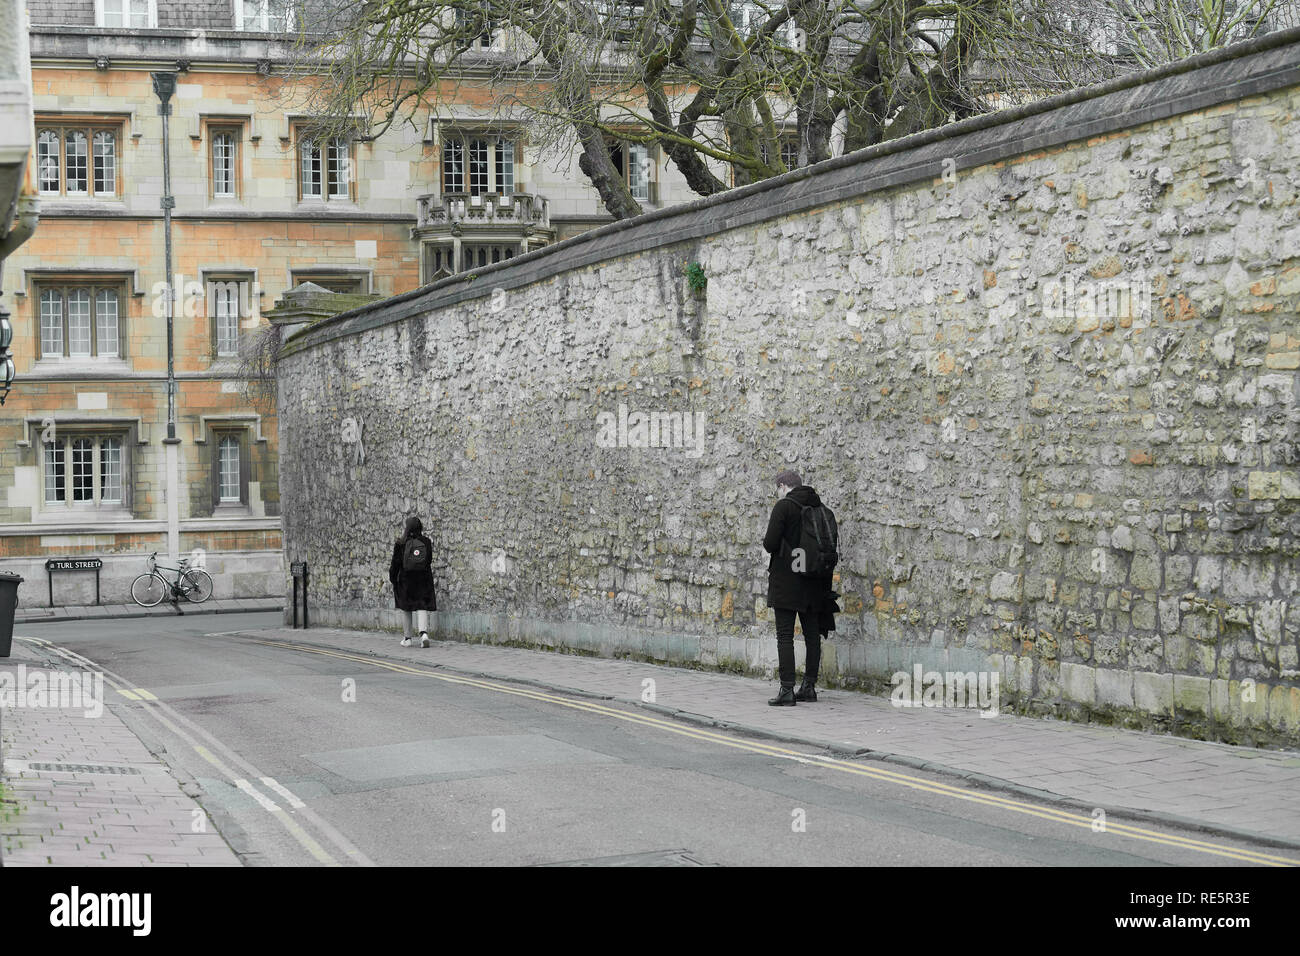 High stone wall of Jesus college, university of Oxford, England, abutting Ship street, with Exeter college in the background. - Stock Image